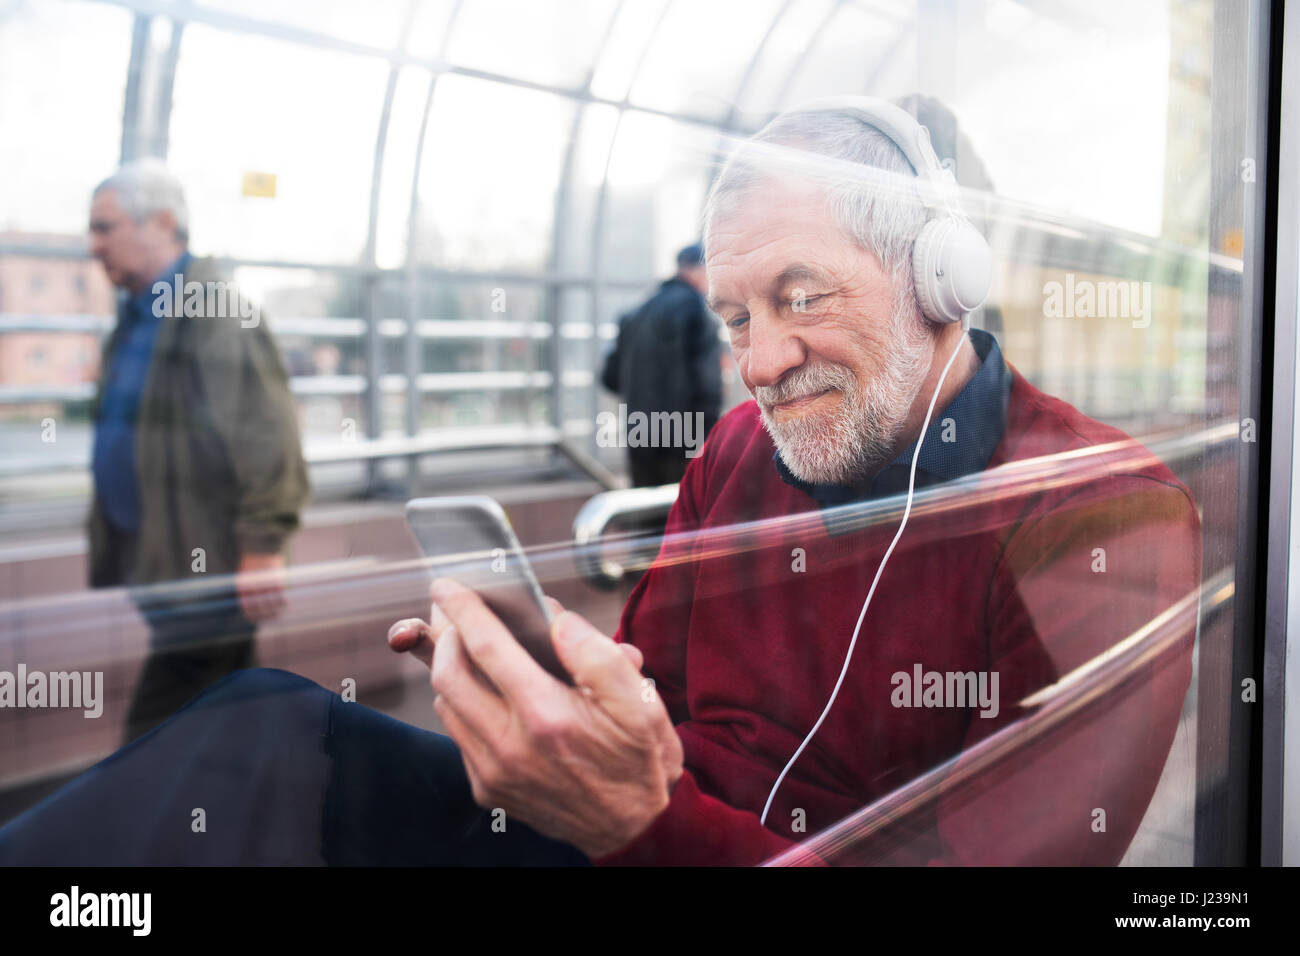 Senior man with smartphone and headphones sitting in passage. - Stock Image